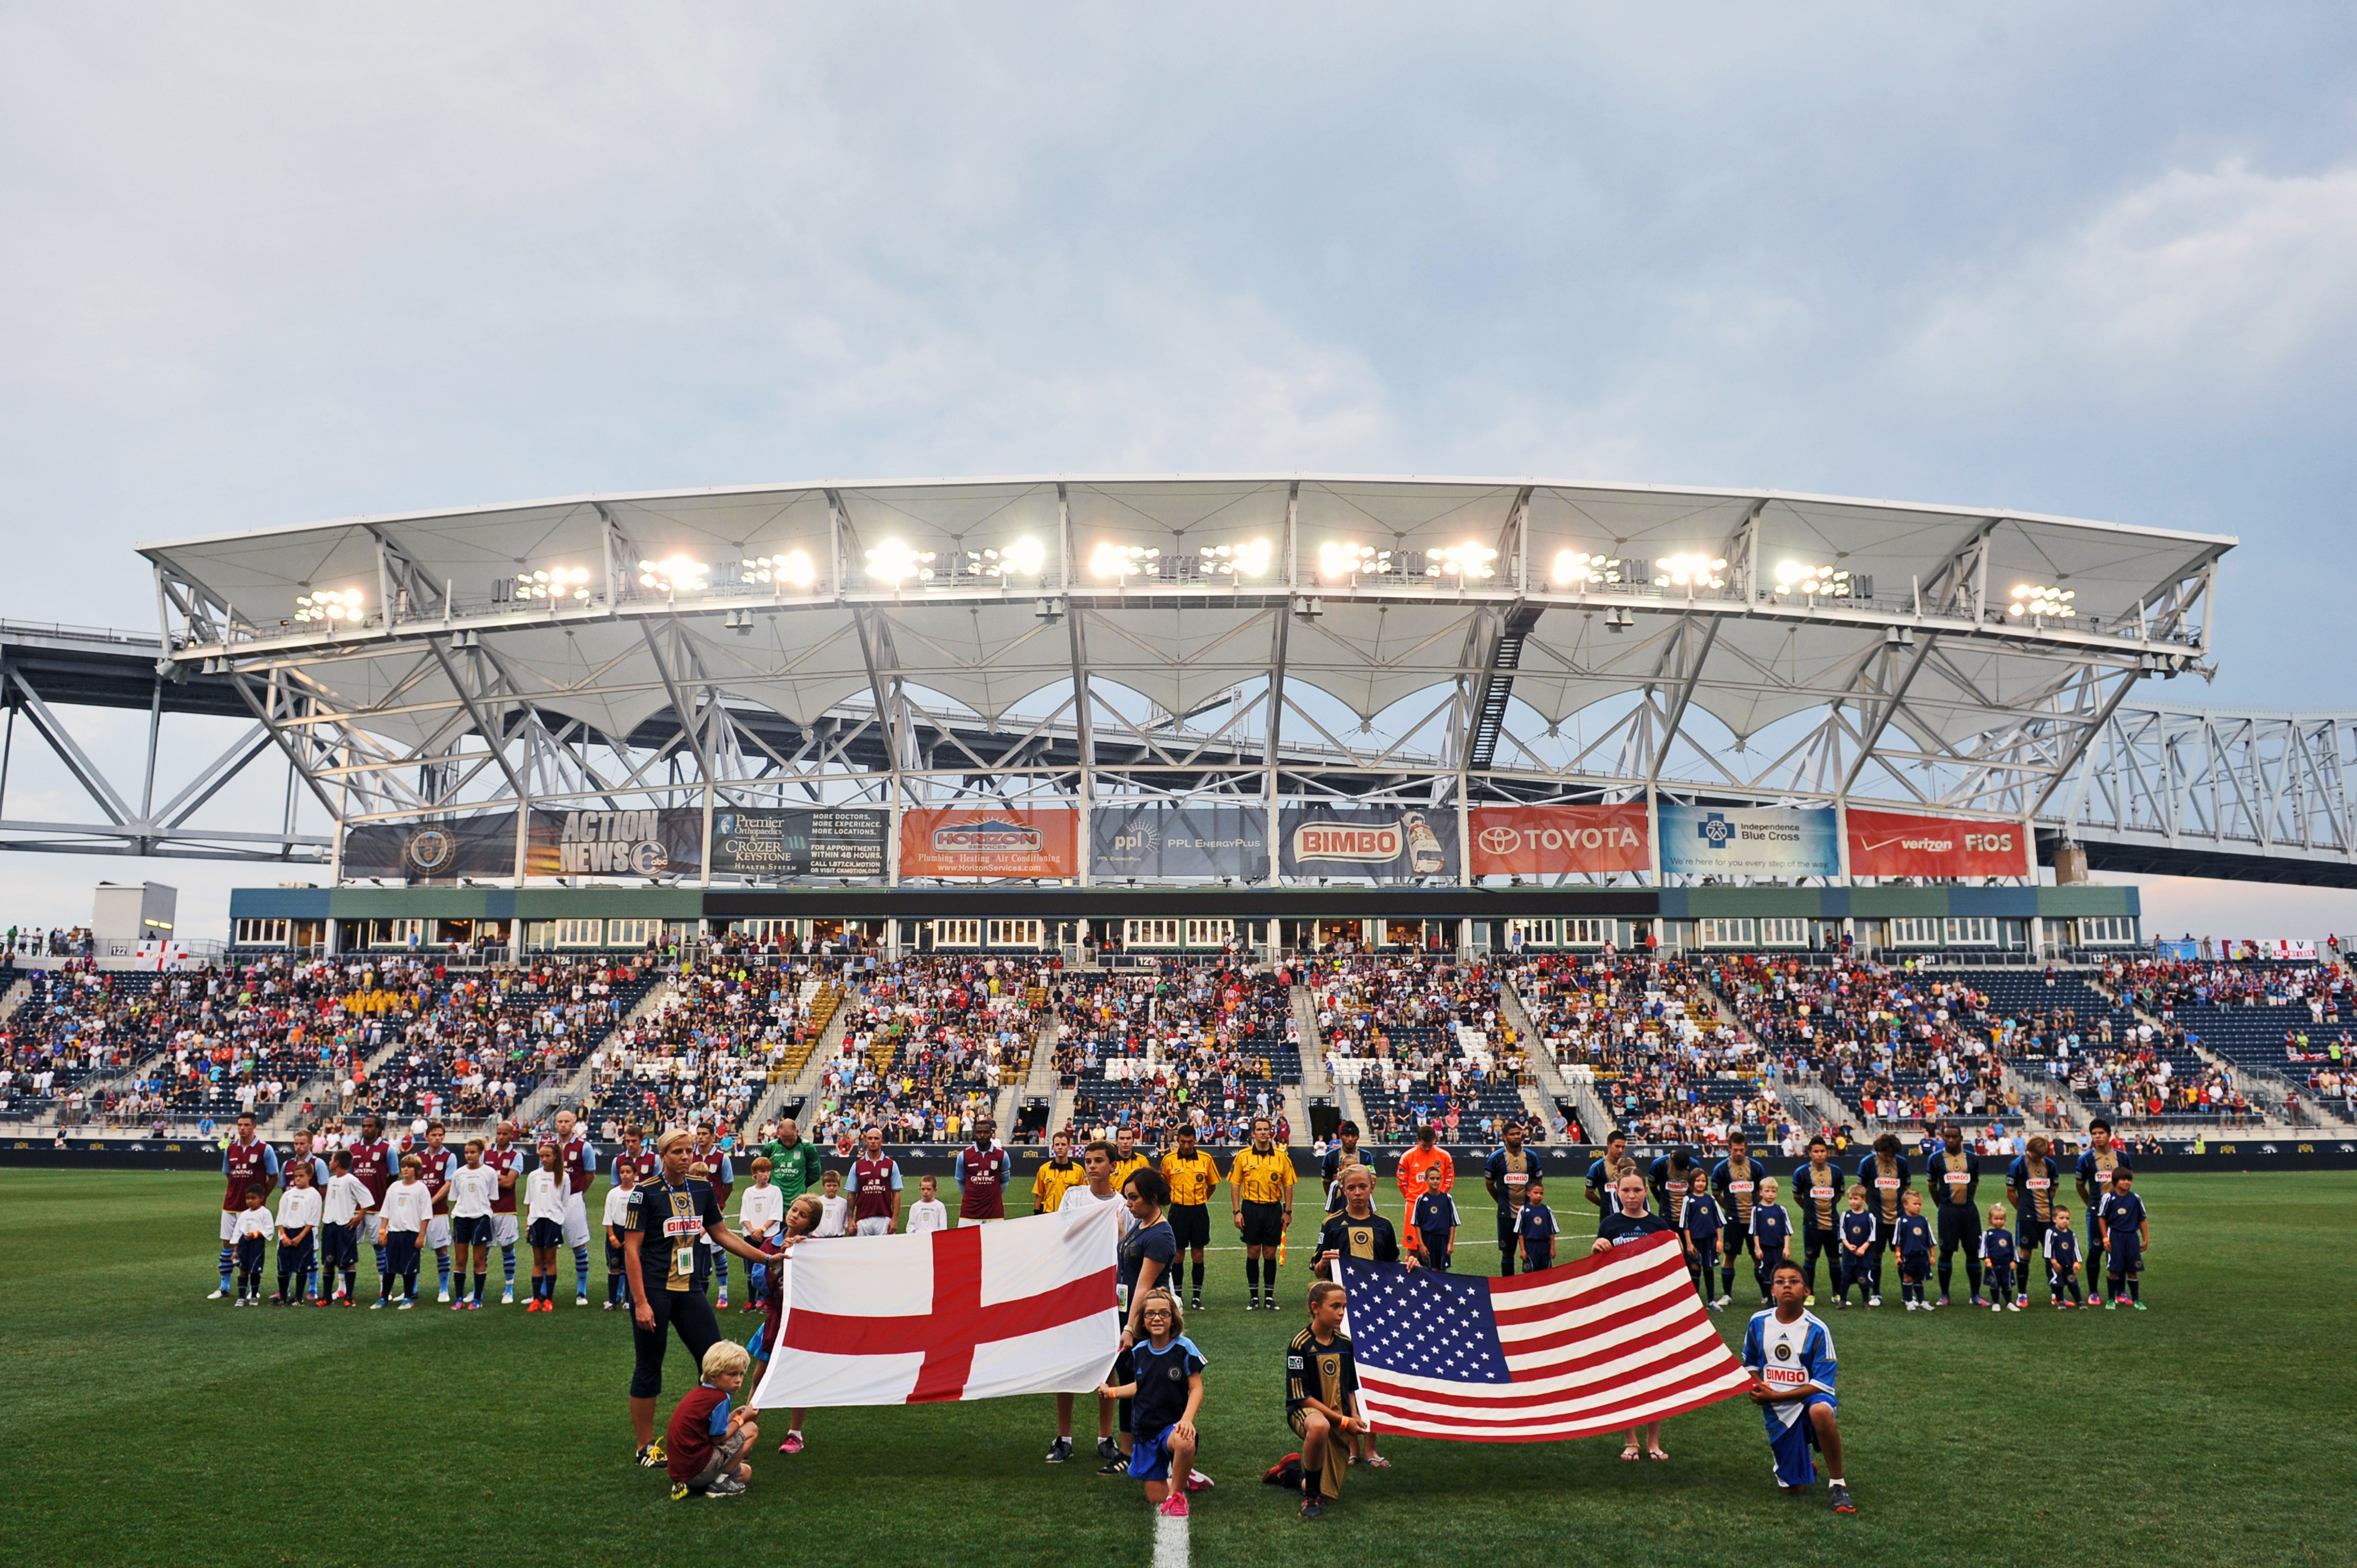 CHESTER, PA - JULY 18: Aston Villa and the Philadelphia Union observe their National Anthems at PPL Park on July 18, 2012 in Chester, Pennsylvania. Aston Villa won 1-0. (Photo by Drew Hallowell/Getty Images)